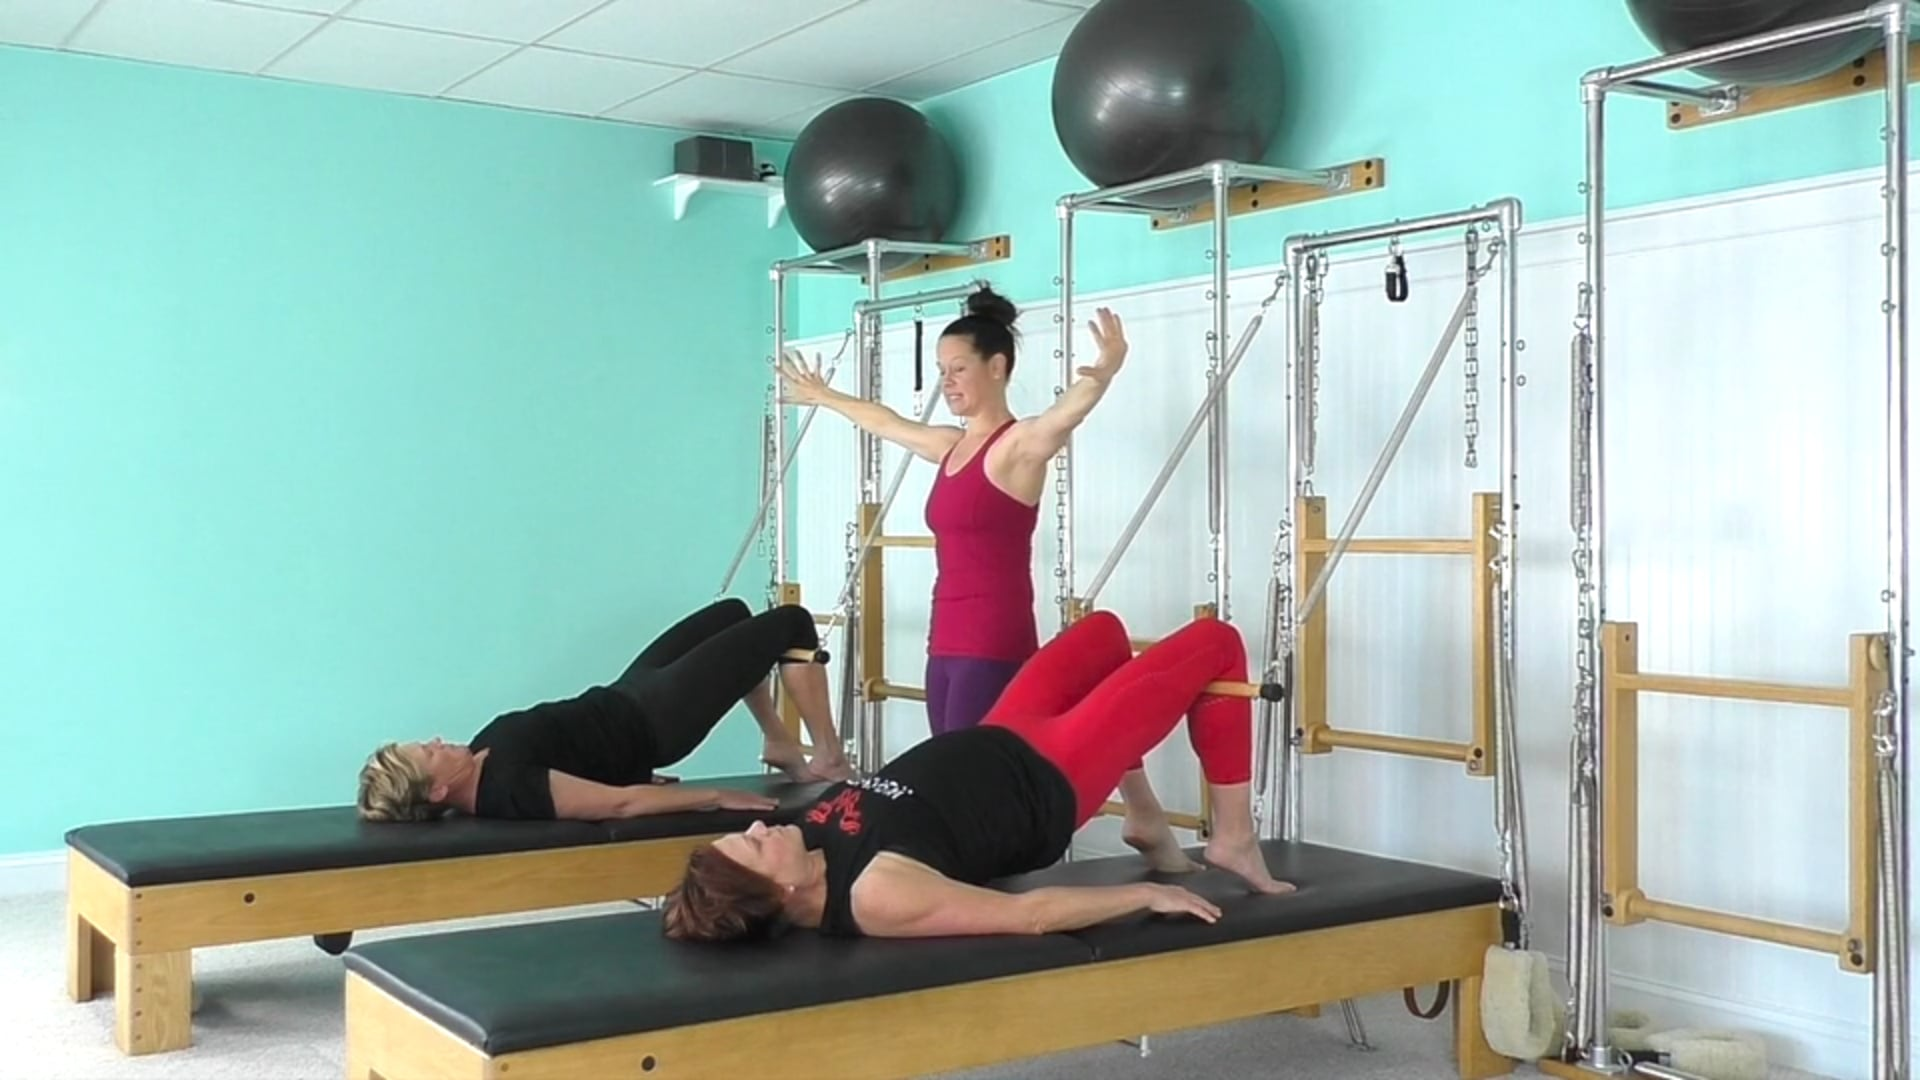 Tower Class With A Focus On Cueing Your Clients (52 mins)